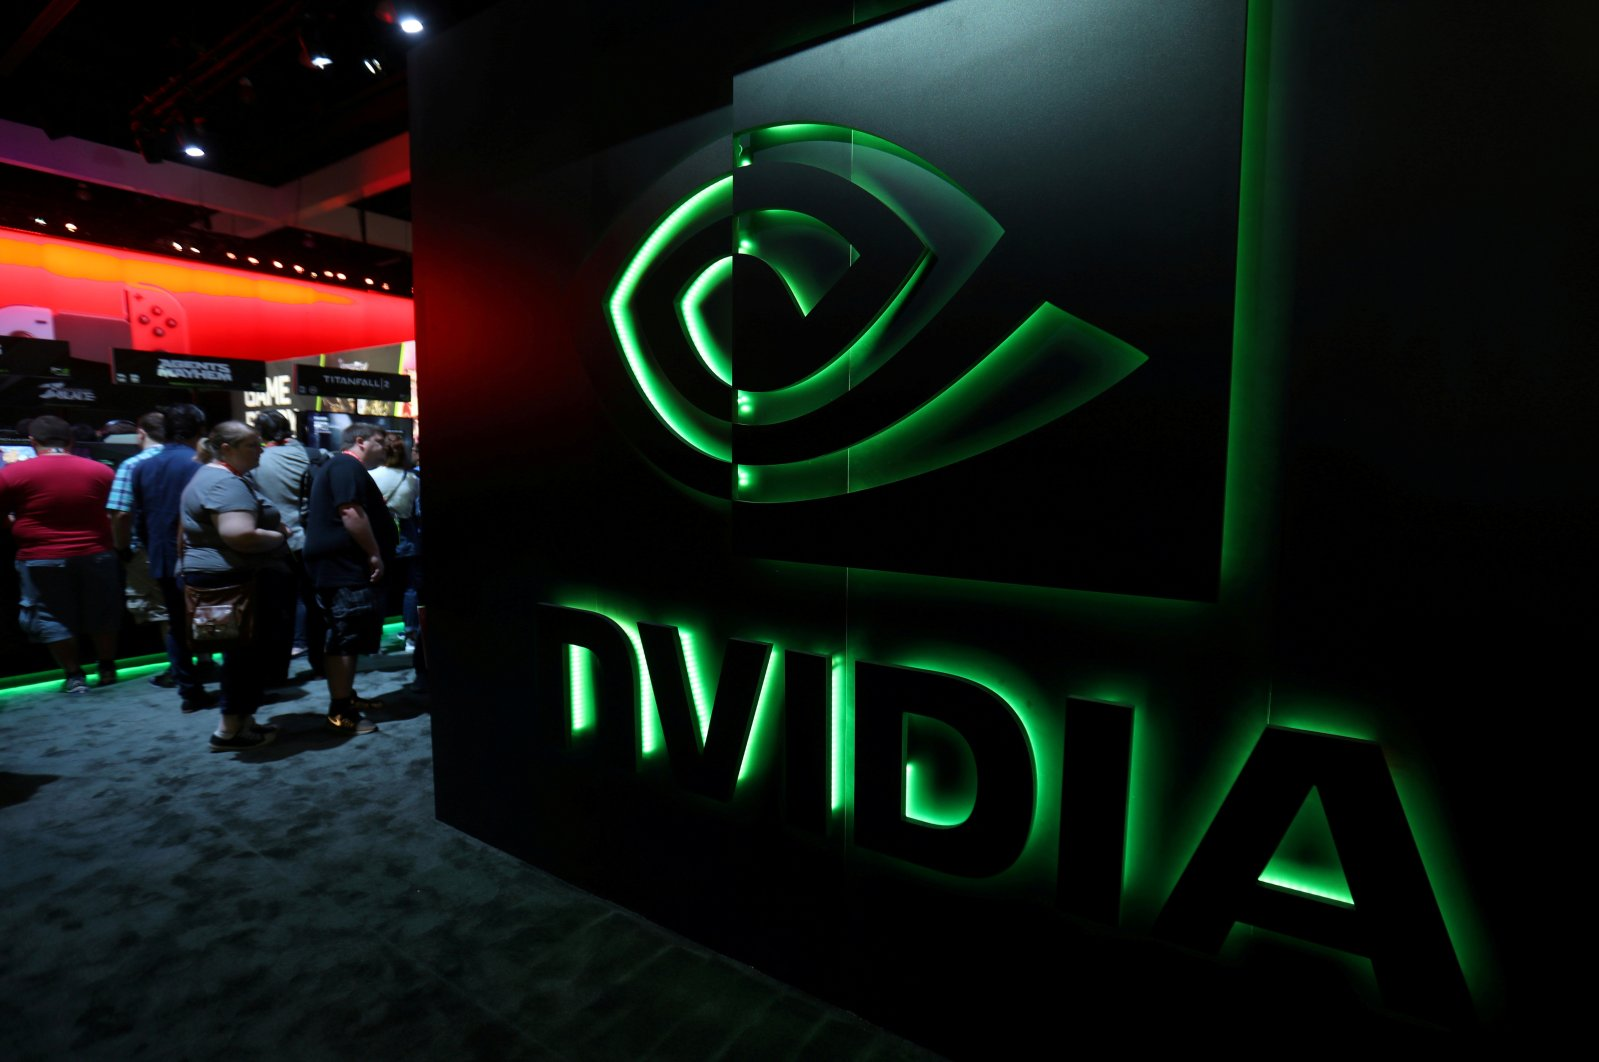 The Nvidia booth is shown at the E3 2017 Electronic Entertainment Expo in Los Angeles, California, U.S., June 13, 2017. (Reuters Photo)